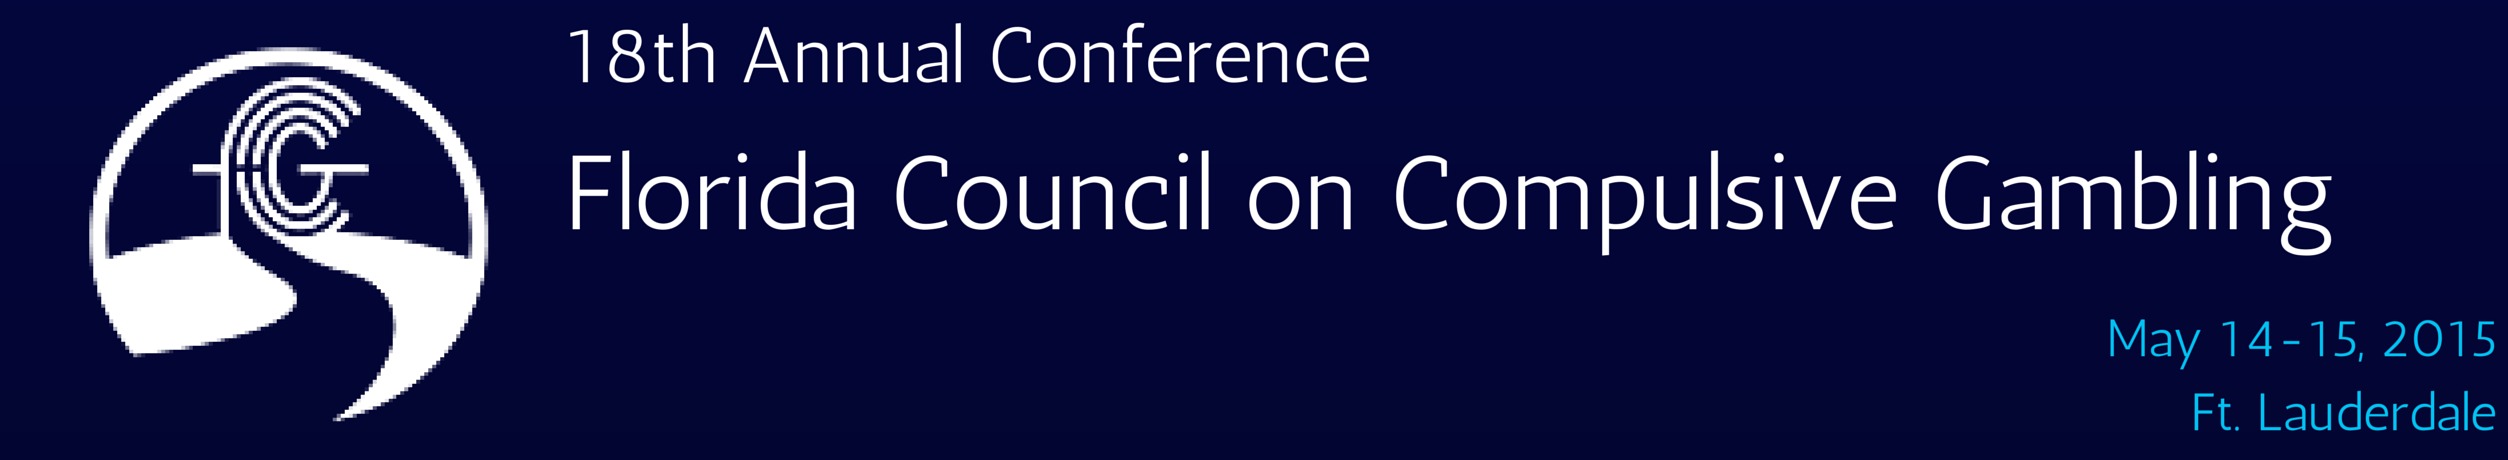 FCCG Conference 2015: Compulsive Gambling Awareness, Prevention & Treatment: Connecting the Dots